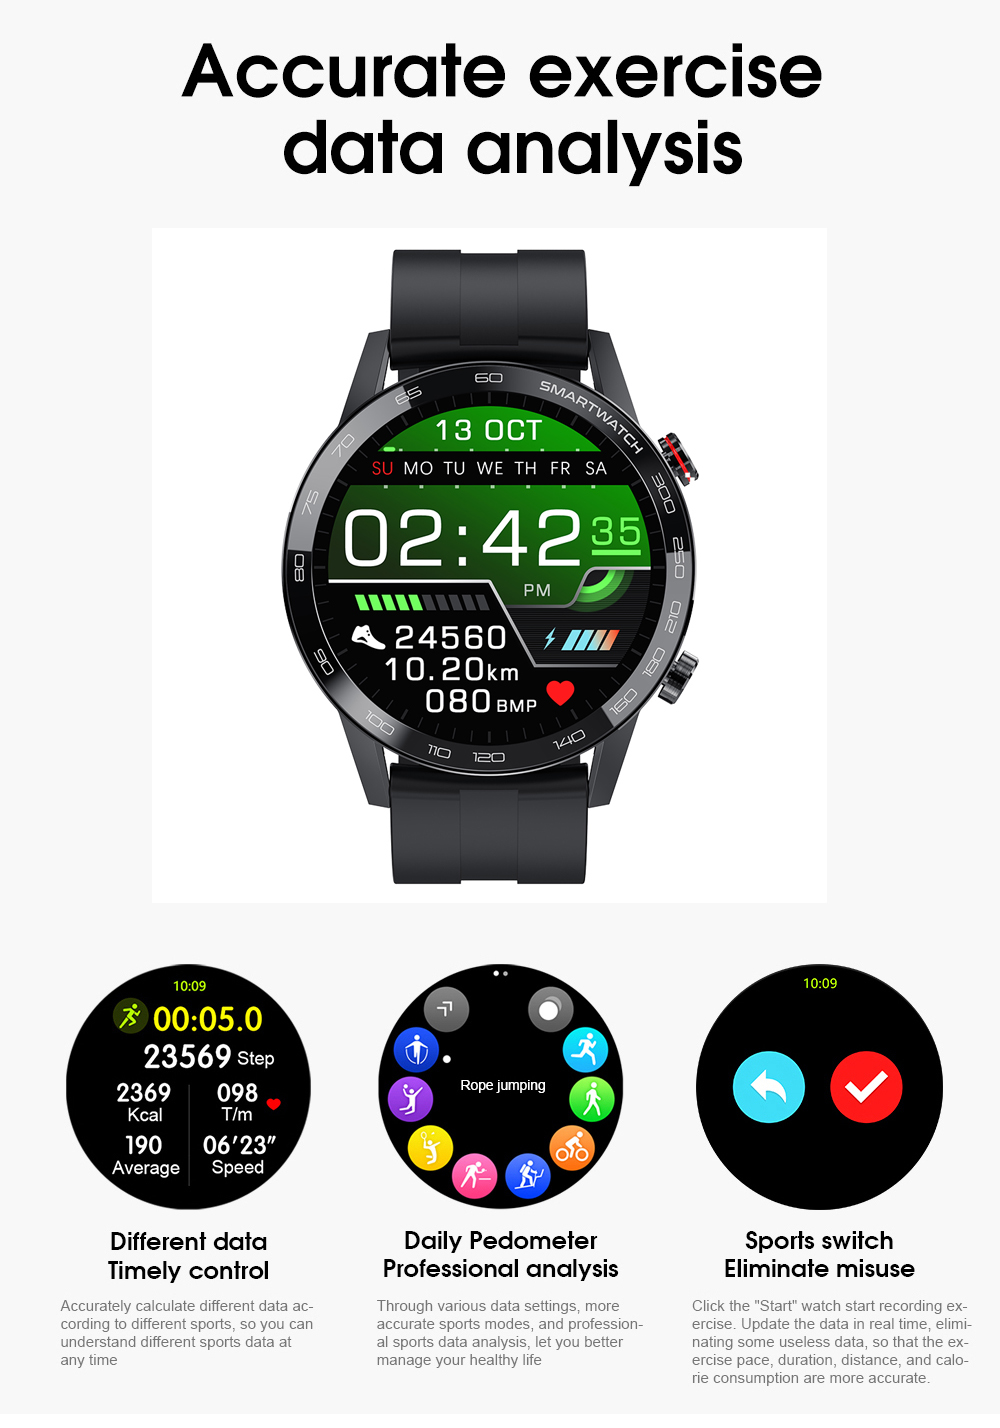 H8583222f8dca4418b9ed708ab0936f80N Reloj Inteligente Hombre Smartwatch Ecg Ppg IP68 Smarthwatch Men Full Touch Smart Watch 2020 For Huawei Xiaomi Android Apple IOS